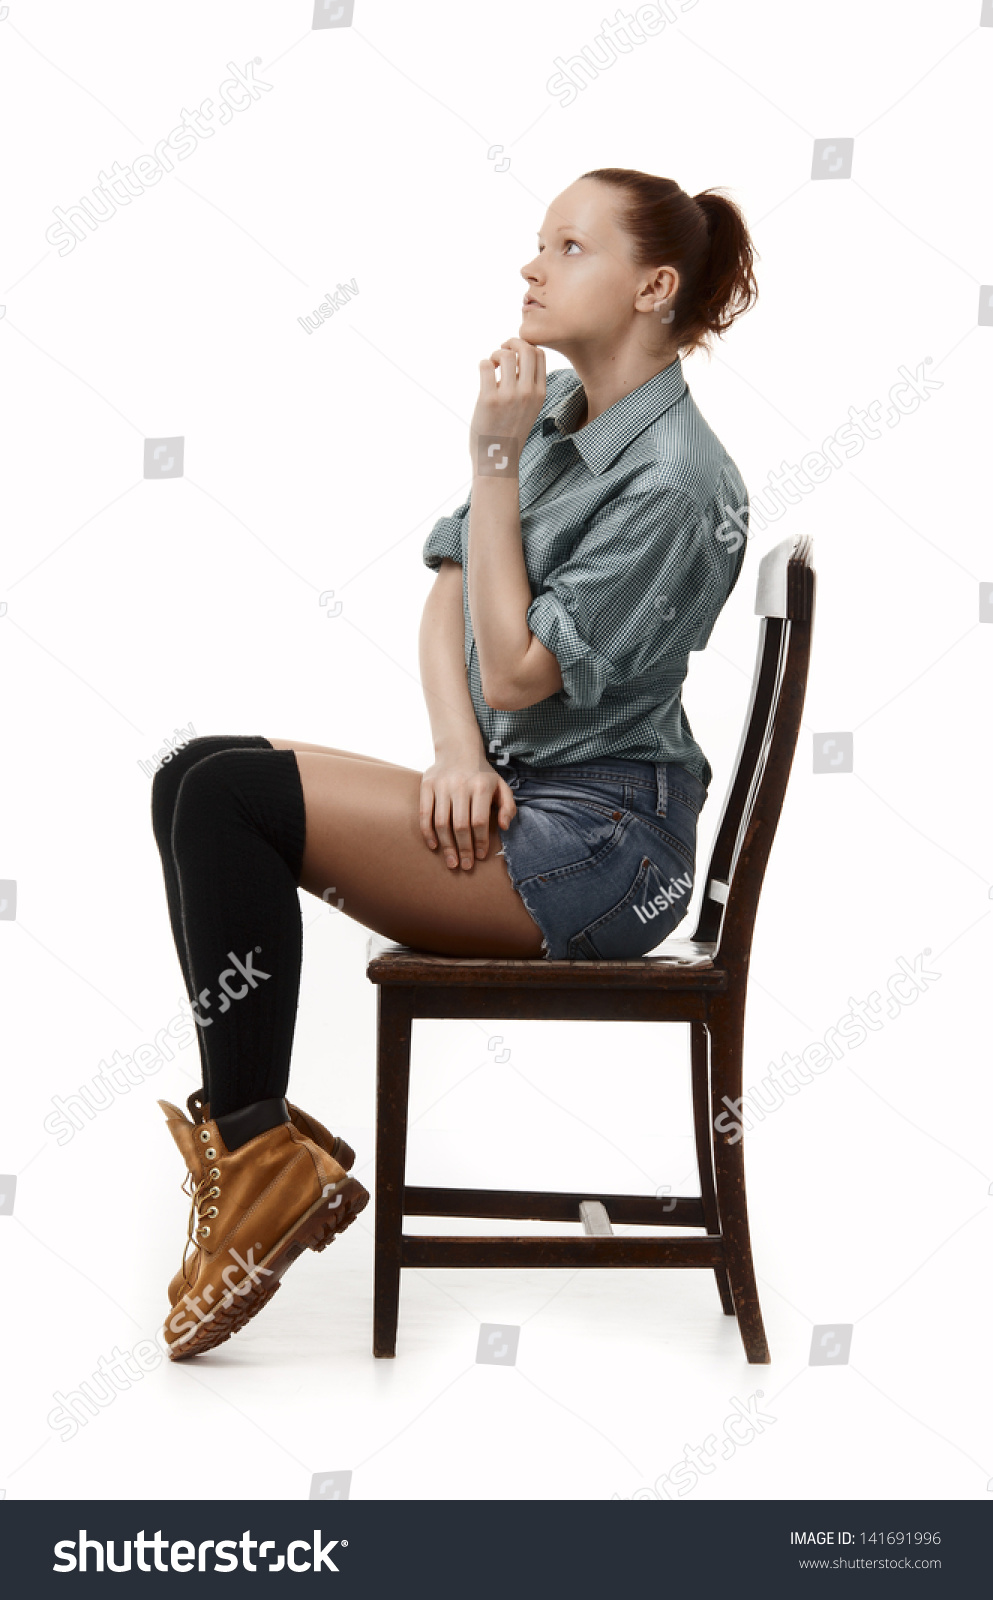 Student sitting on chair